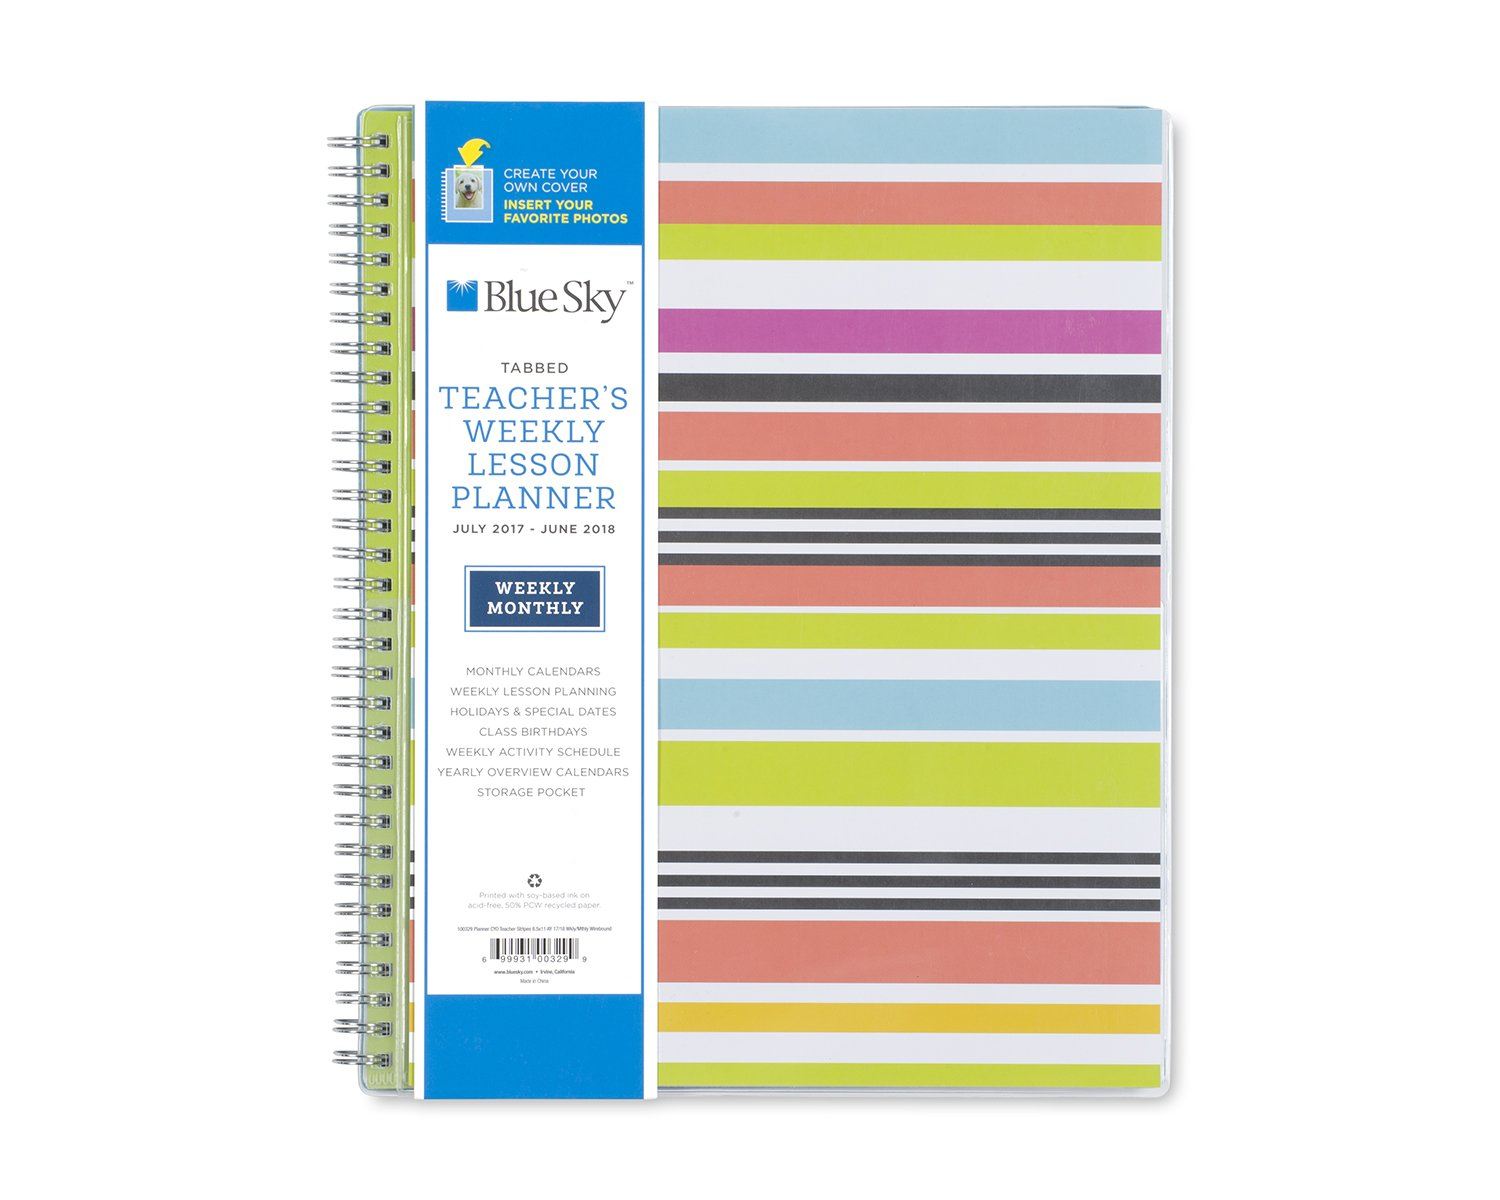 amazoncom blue sky 2017 2018 academic year teachers weekly lesson planner twin wire bound 85 x 11 stripe cover office products